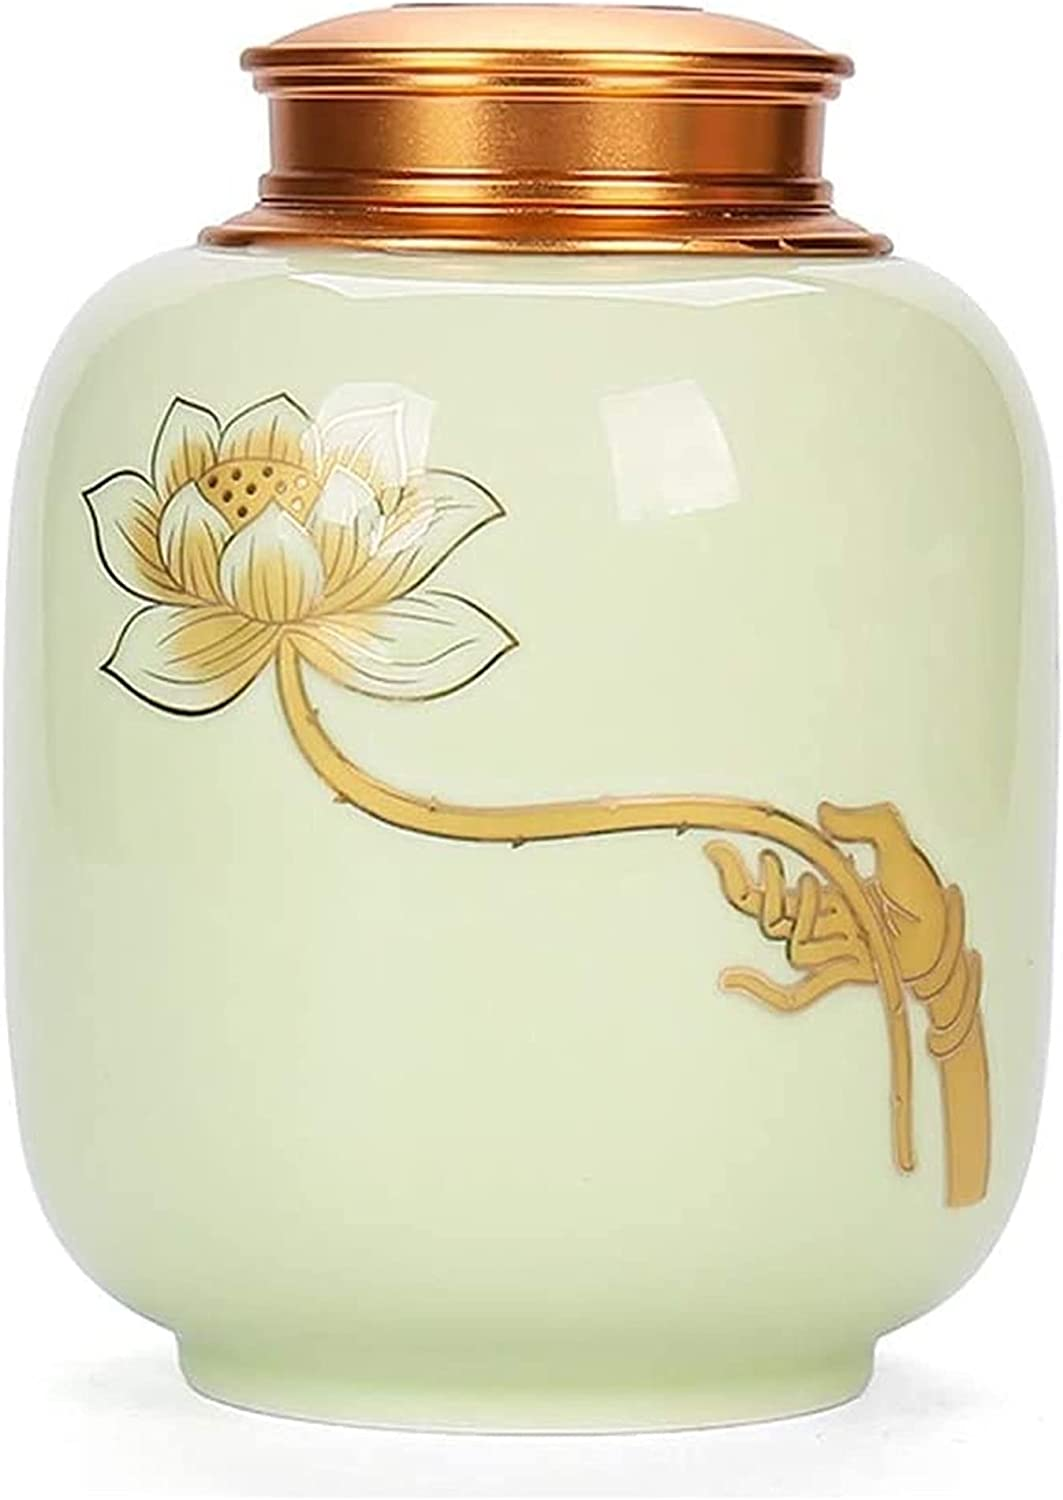 MTFZD Funeral Brand new Urn Urns Free shipping Small Cremation Ashes for